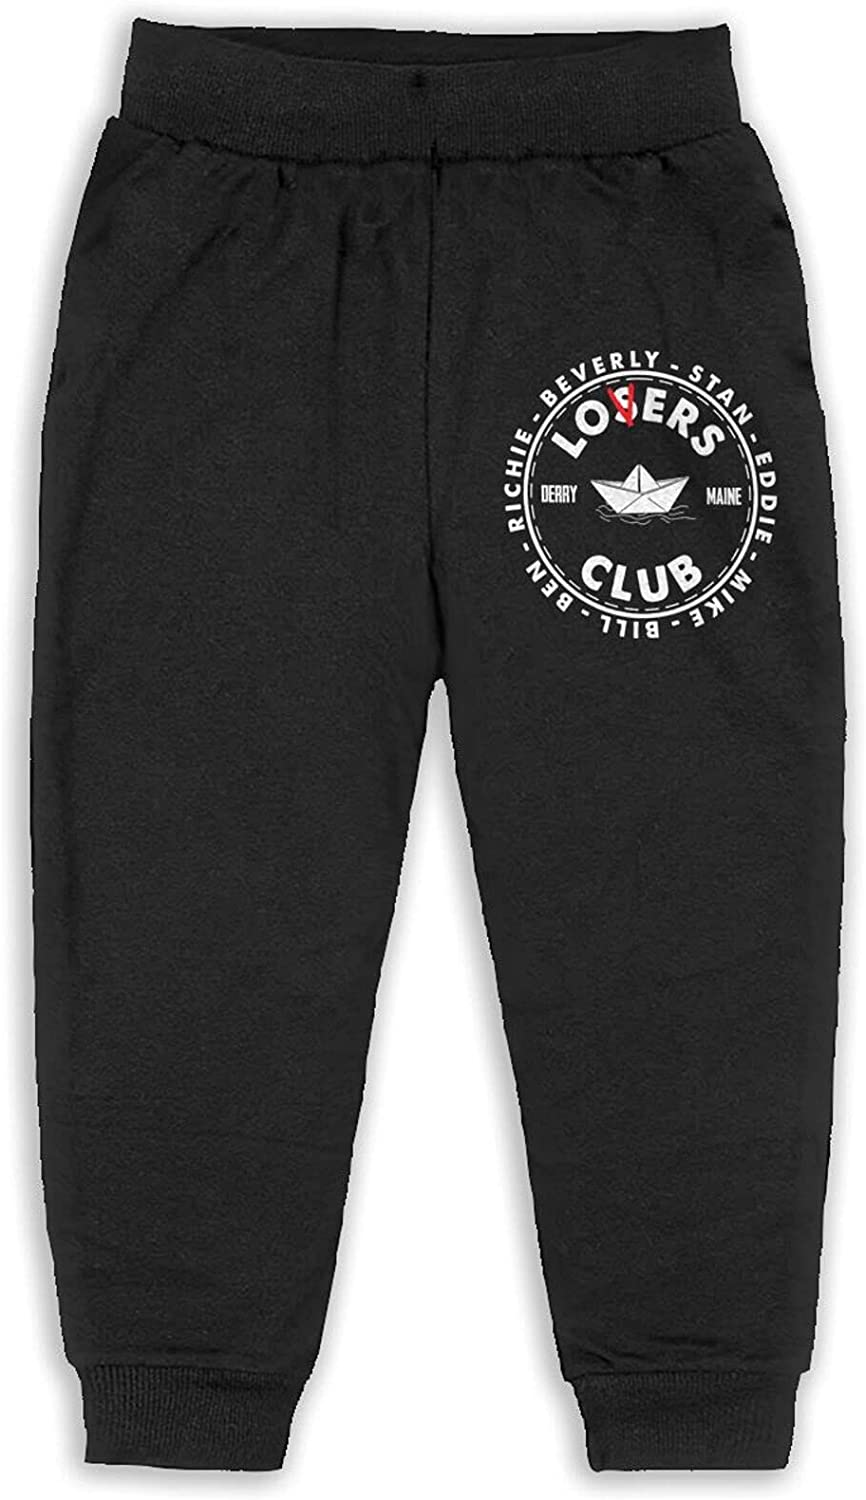 Maoyouuxian The Losers' Club Emblem Babies Toddler BoysCotton Jogger Sweatpants 2t-6 (5-6 Years)